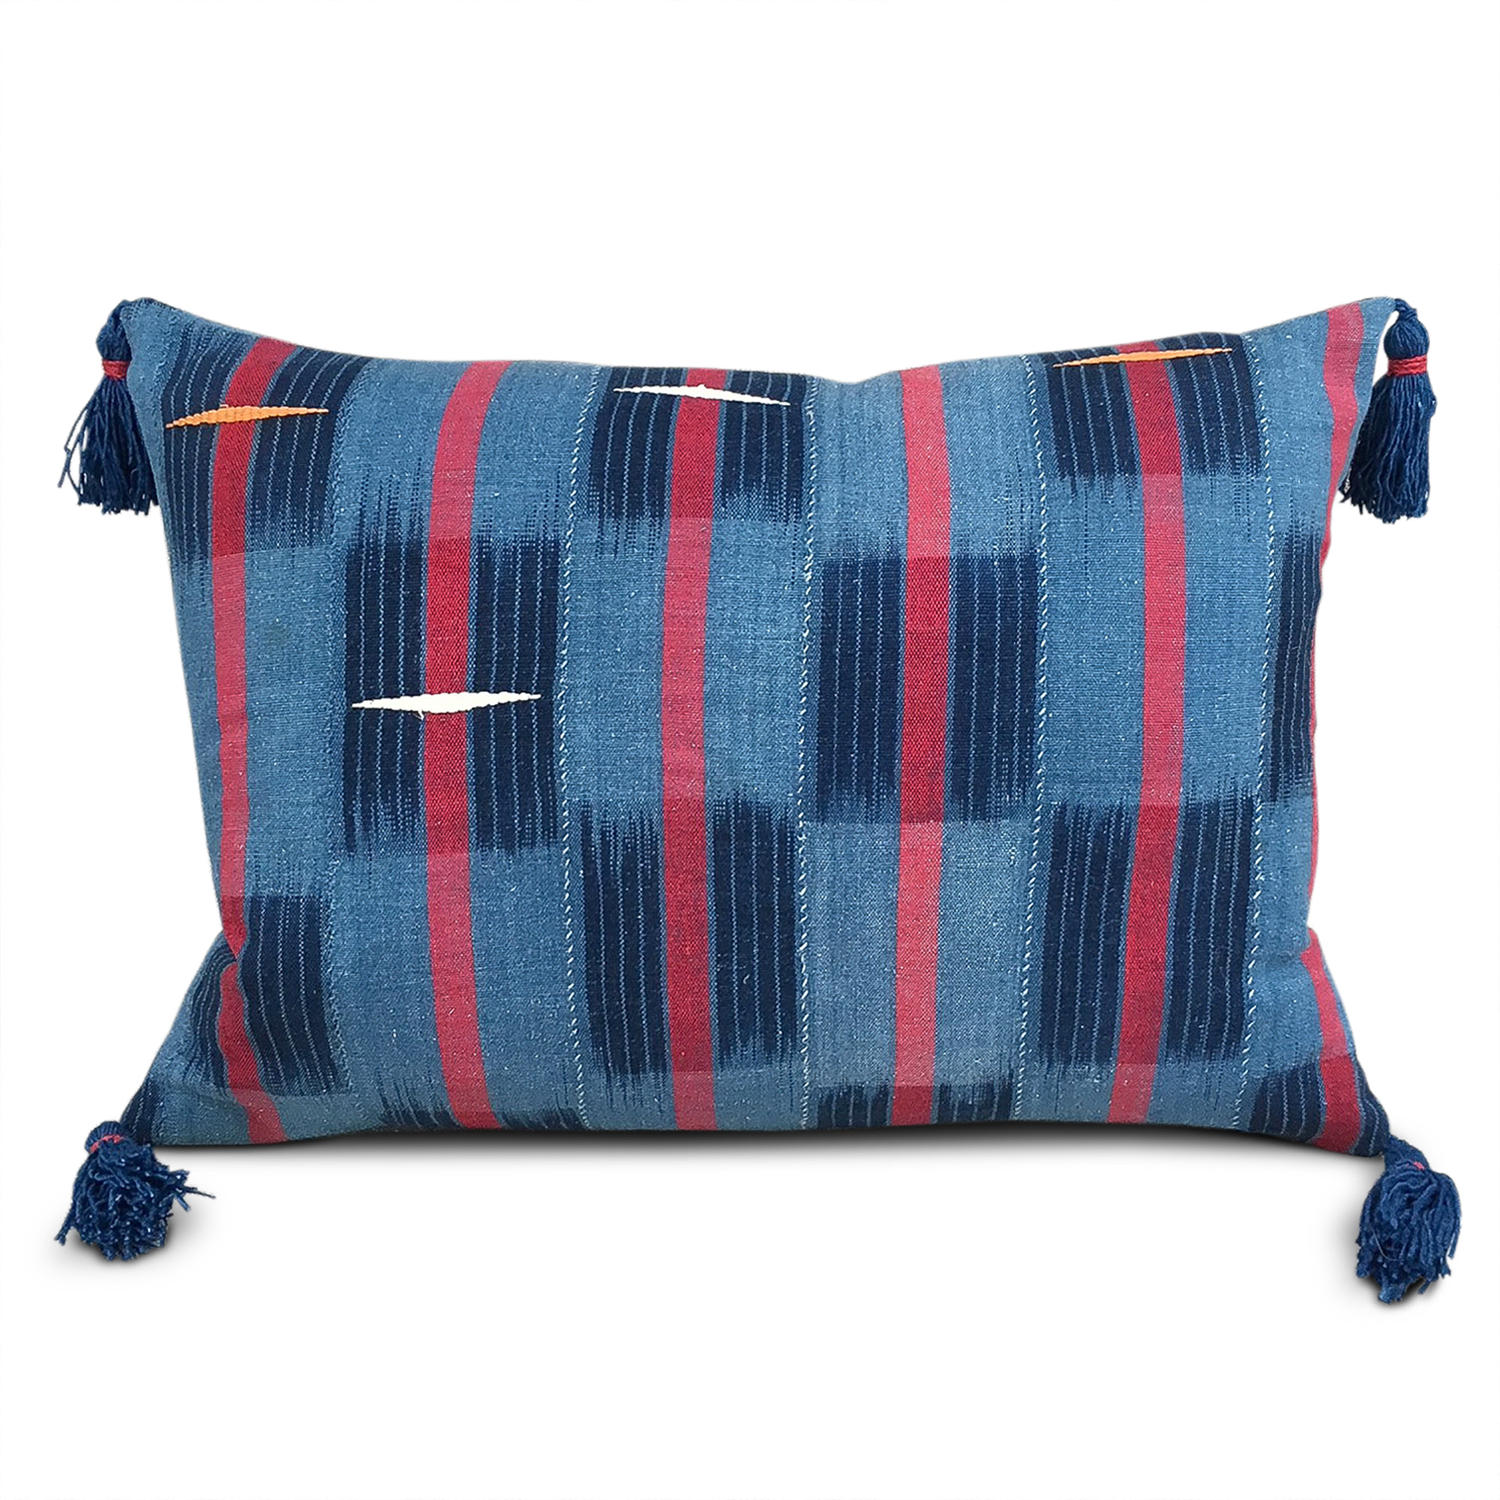 Vintage Dioula Cushions with Tassles